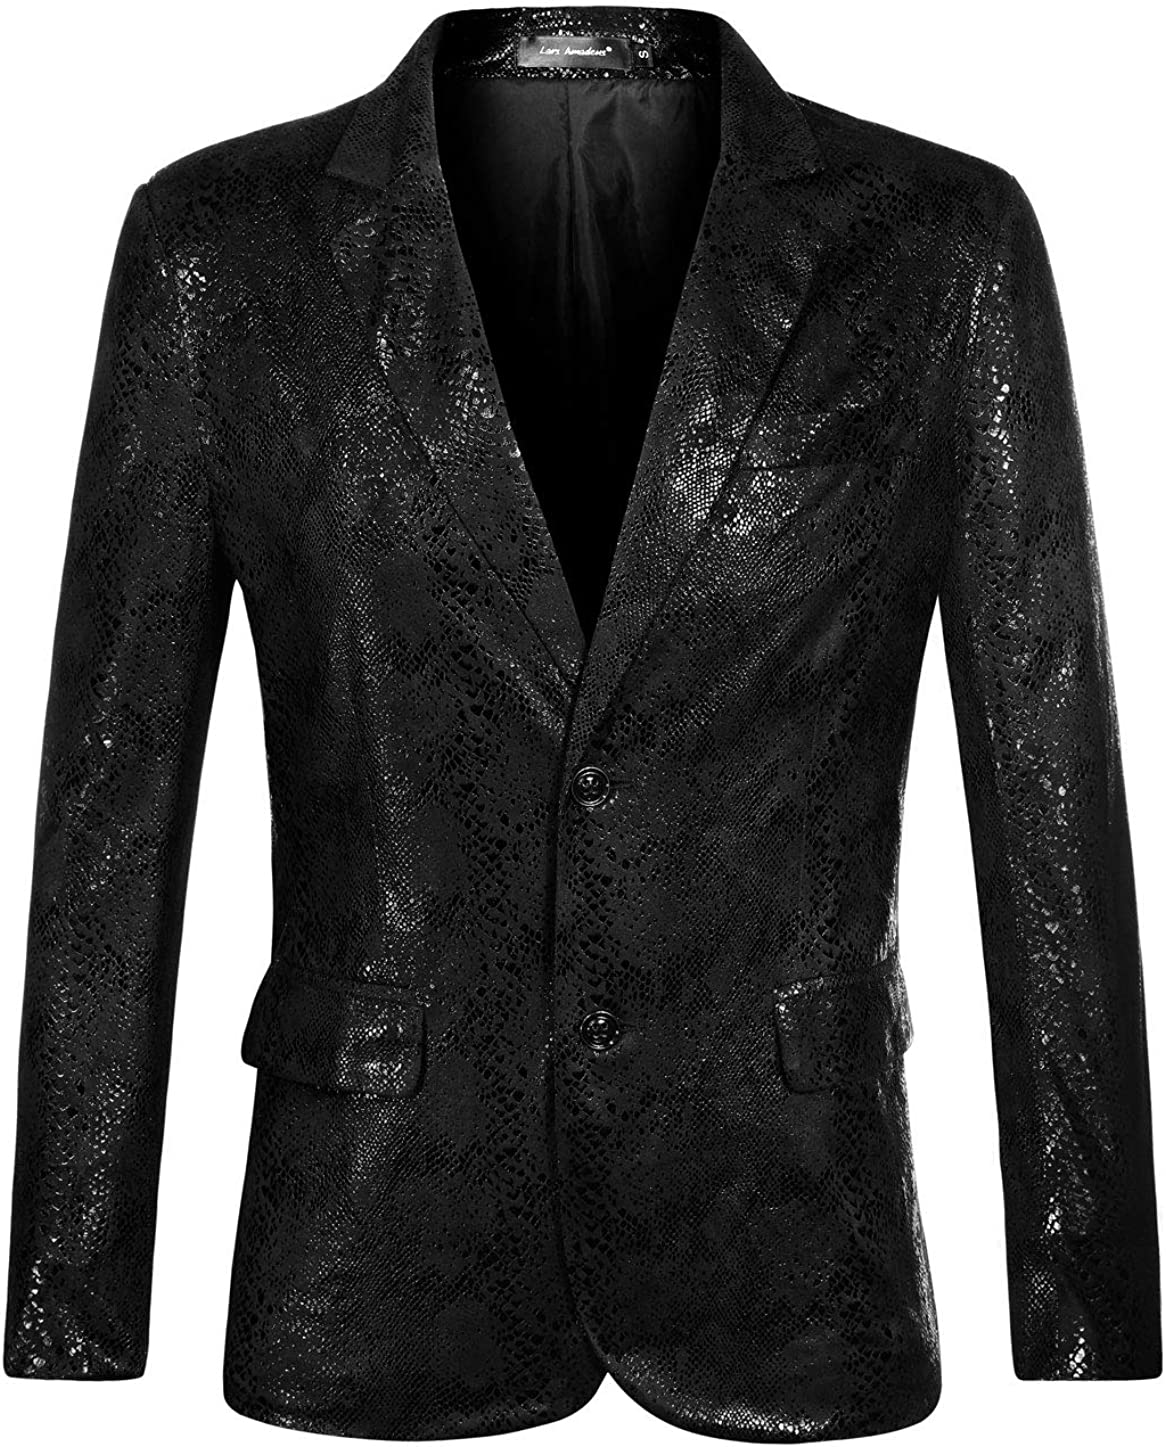 Lars Amadeus Men's Party Animal Print Blazer Notched Lapel Lightweight Sport Coat Suit Jacket